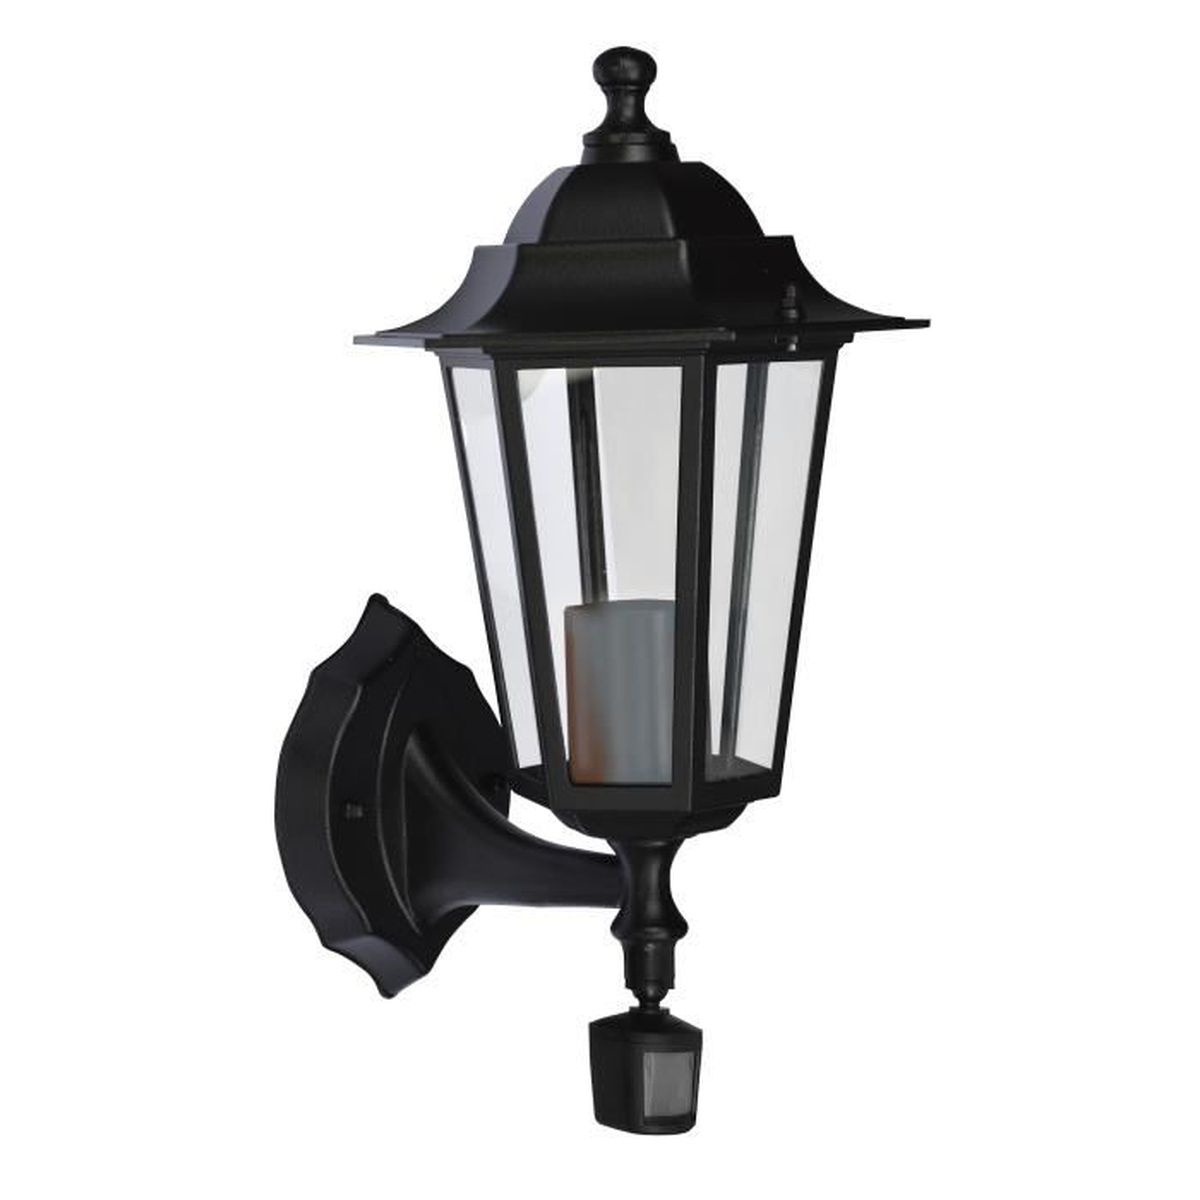 lanterne lampe de jardin avec detecteur de mouvement applique achat vente lanterne lampe. Black Bedroom Furniture Sets. Home Design Ideas